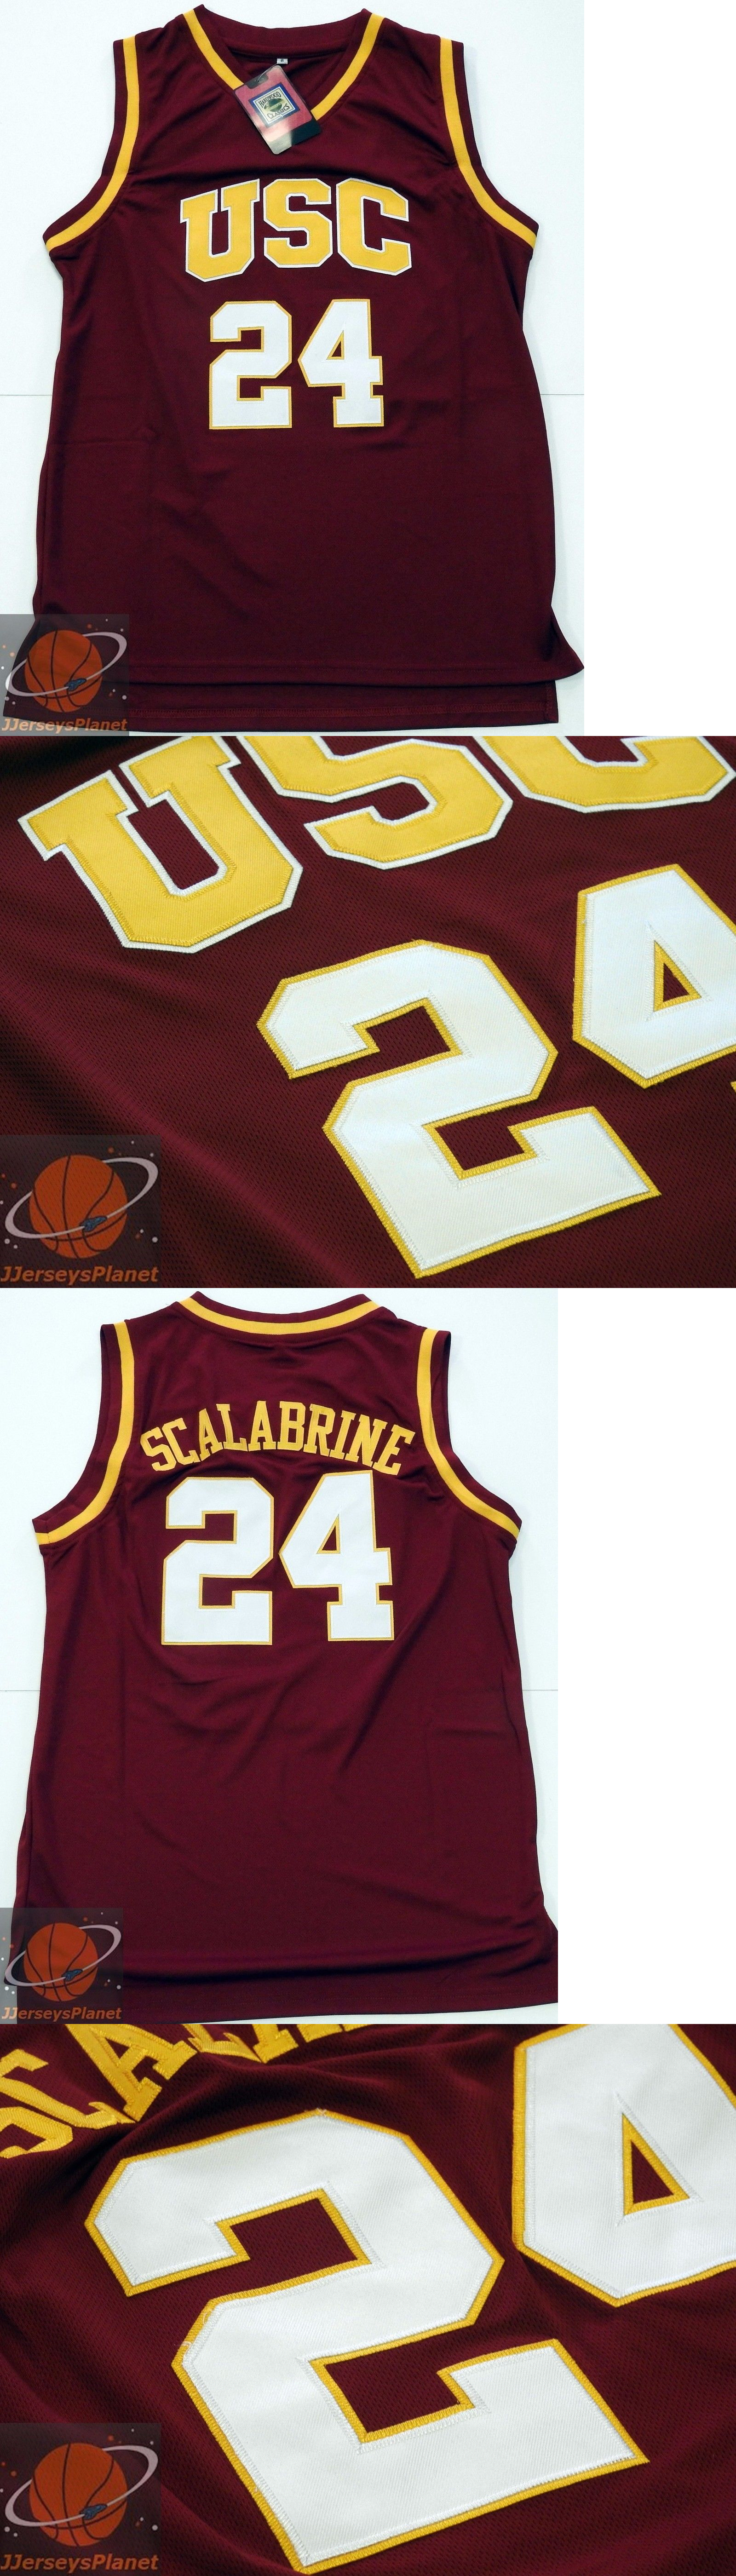 084d1ae1fa7 ... T-Shirt Basketball-NBA 24442 Ncaa Throwback Basketball Jersey Brian  Scalabrine 24 Usc Trojans Red ...